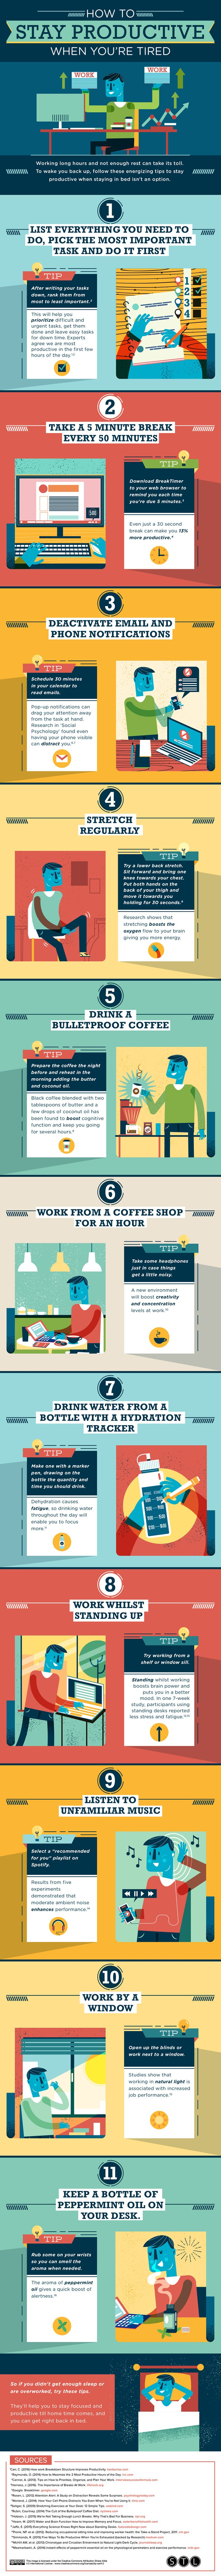 A Guide To Being Productive Even While You're Tired - Infographic